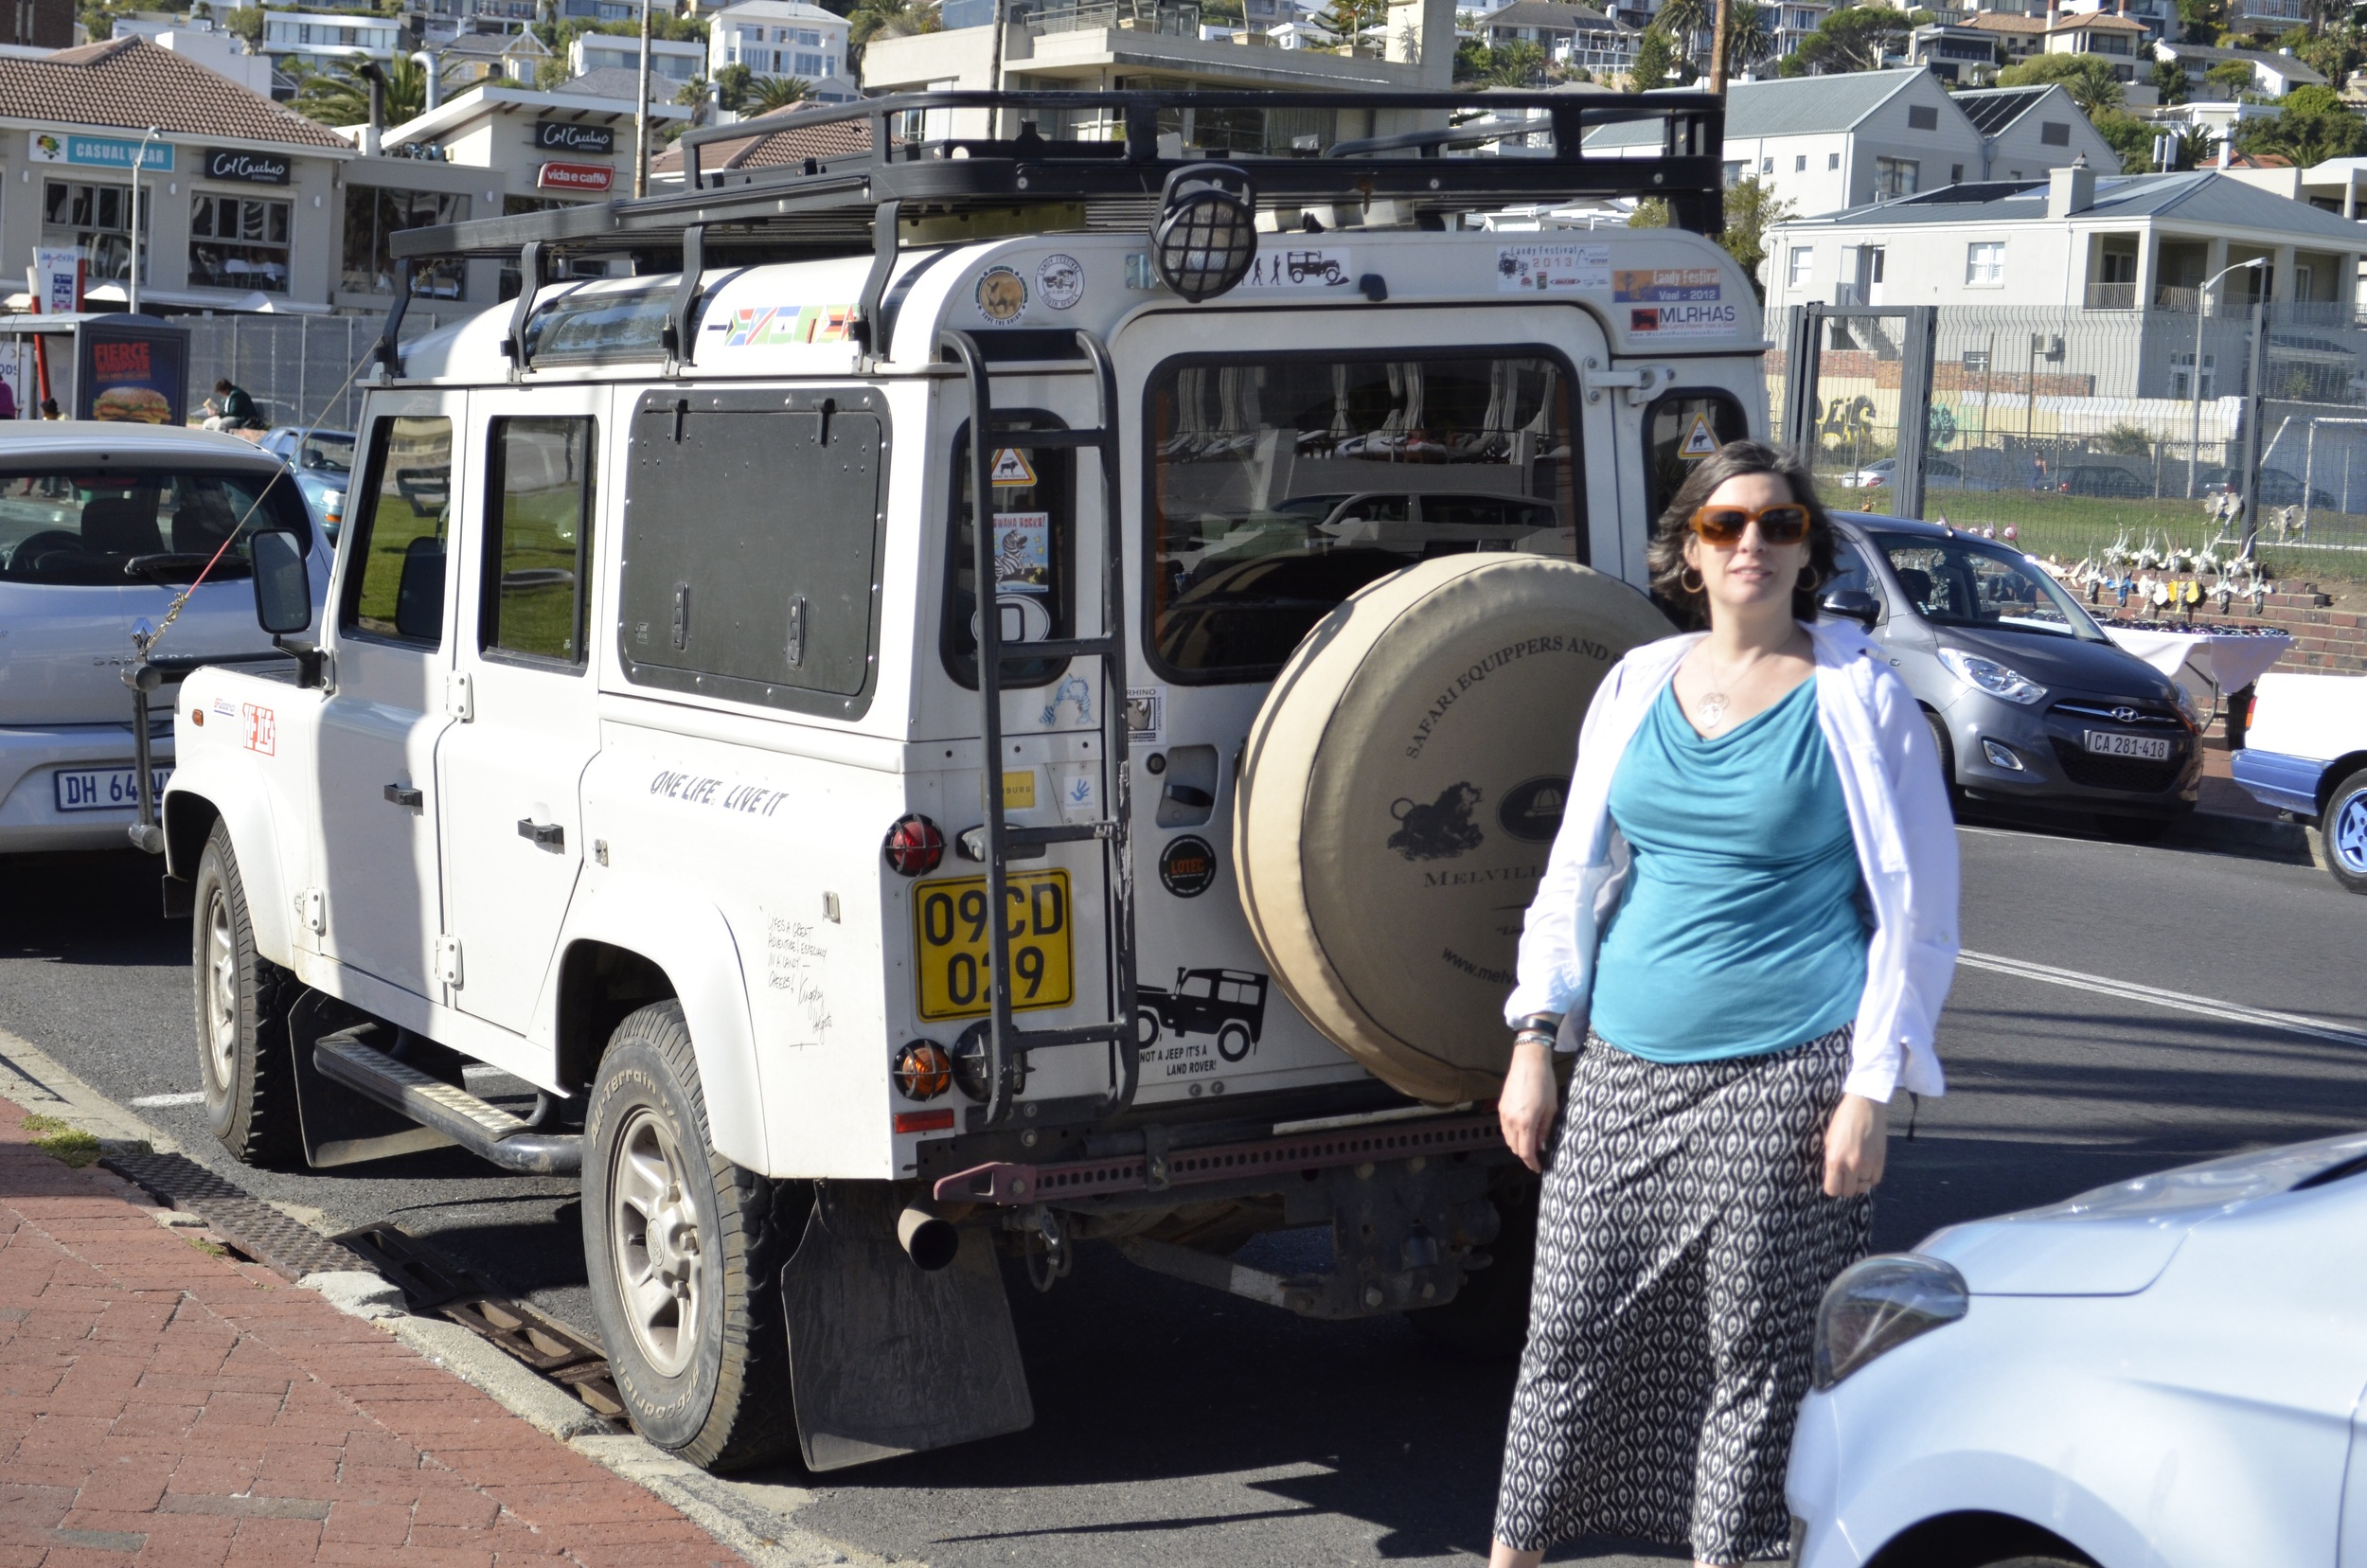 Jenna spots an overlander that has clearly seen a few kilometers.